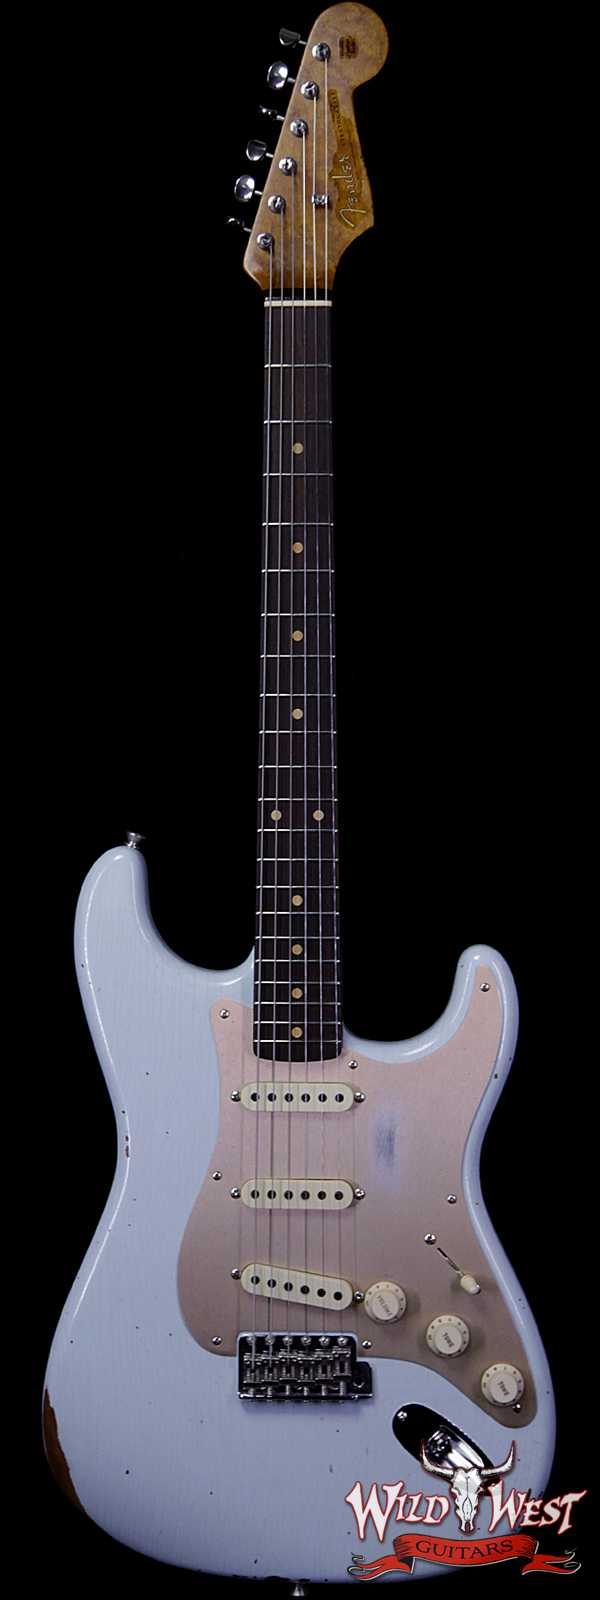 Fender Custom Shop Roasted 1960 Stratocaster Relic Birdseye Neck Slab AAA Rosewood Board Faded Sonic Blue